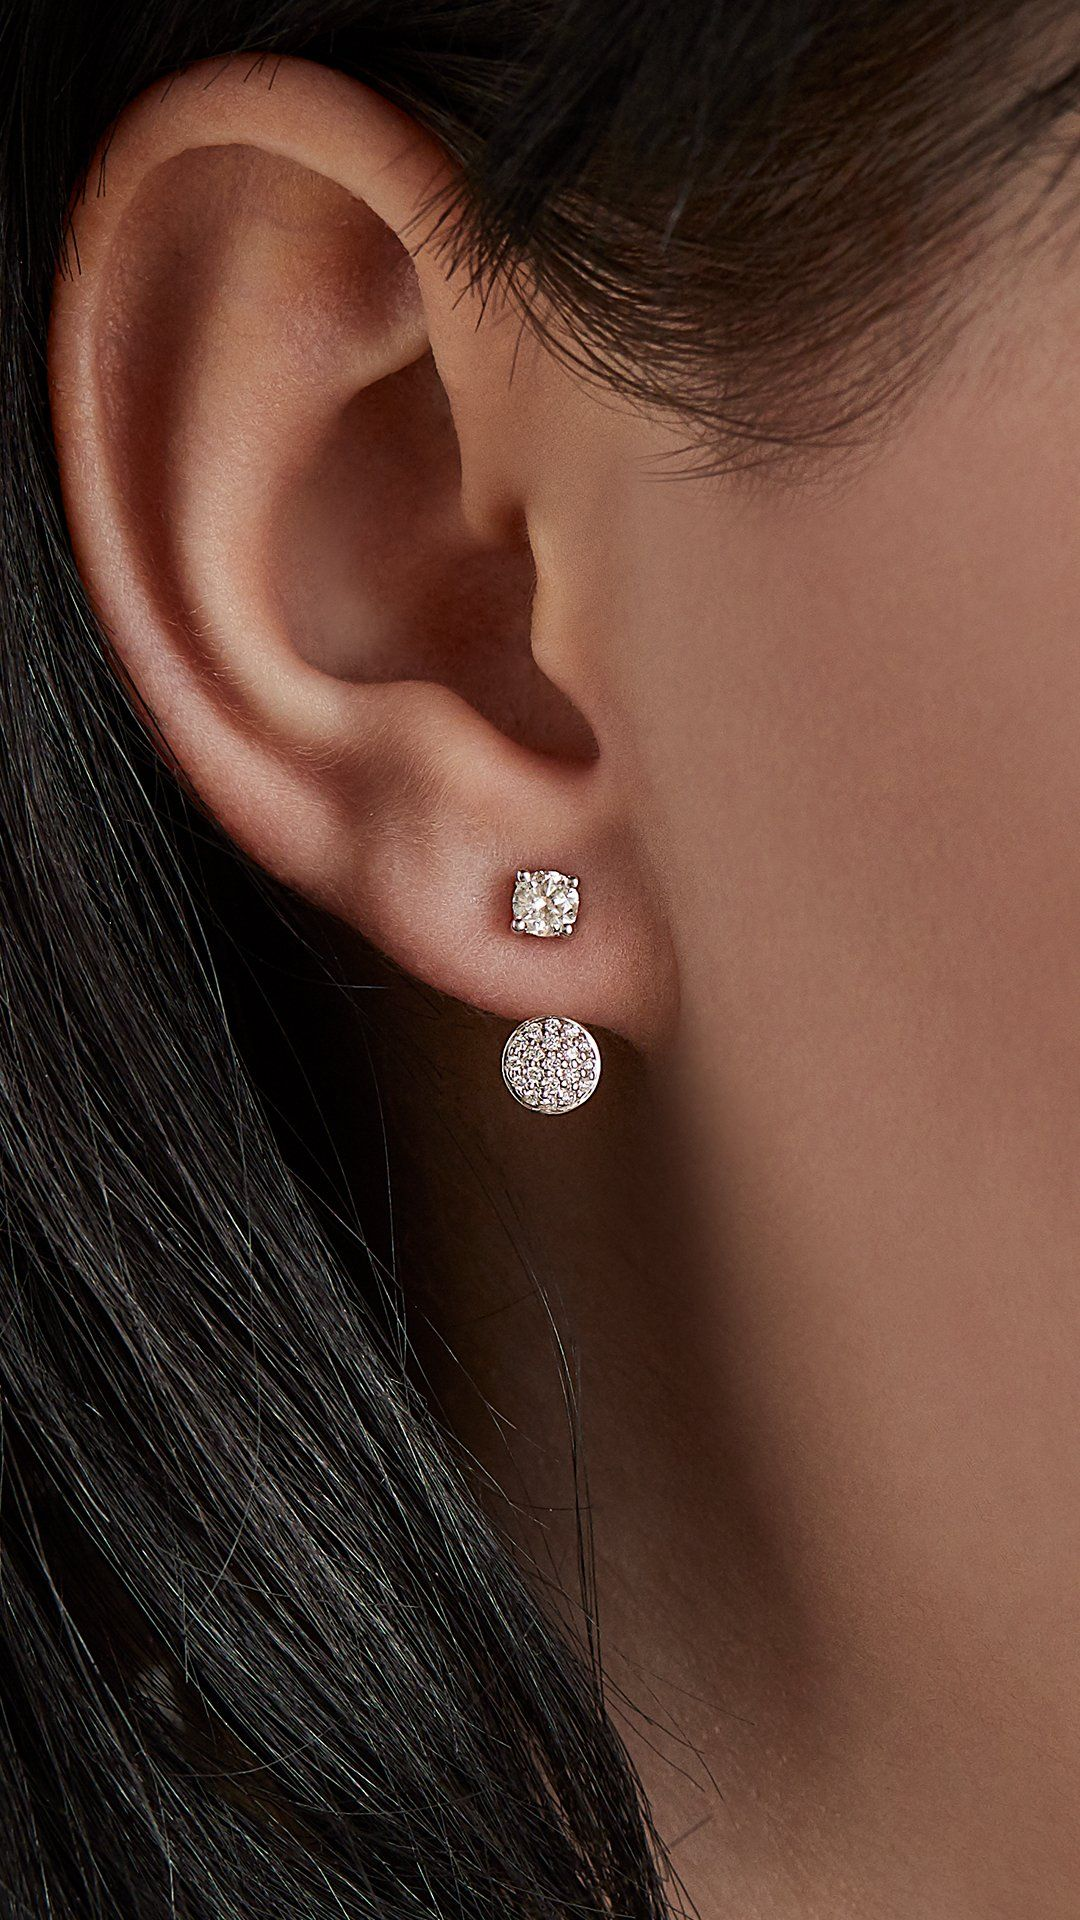 Diamond Stud And Pave Disc Ear Jacket In 14k White Gold 1 2 Ct Tw Blue Nile Diamond Studs Ear Jacket Diamond Diamond